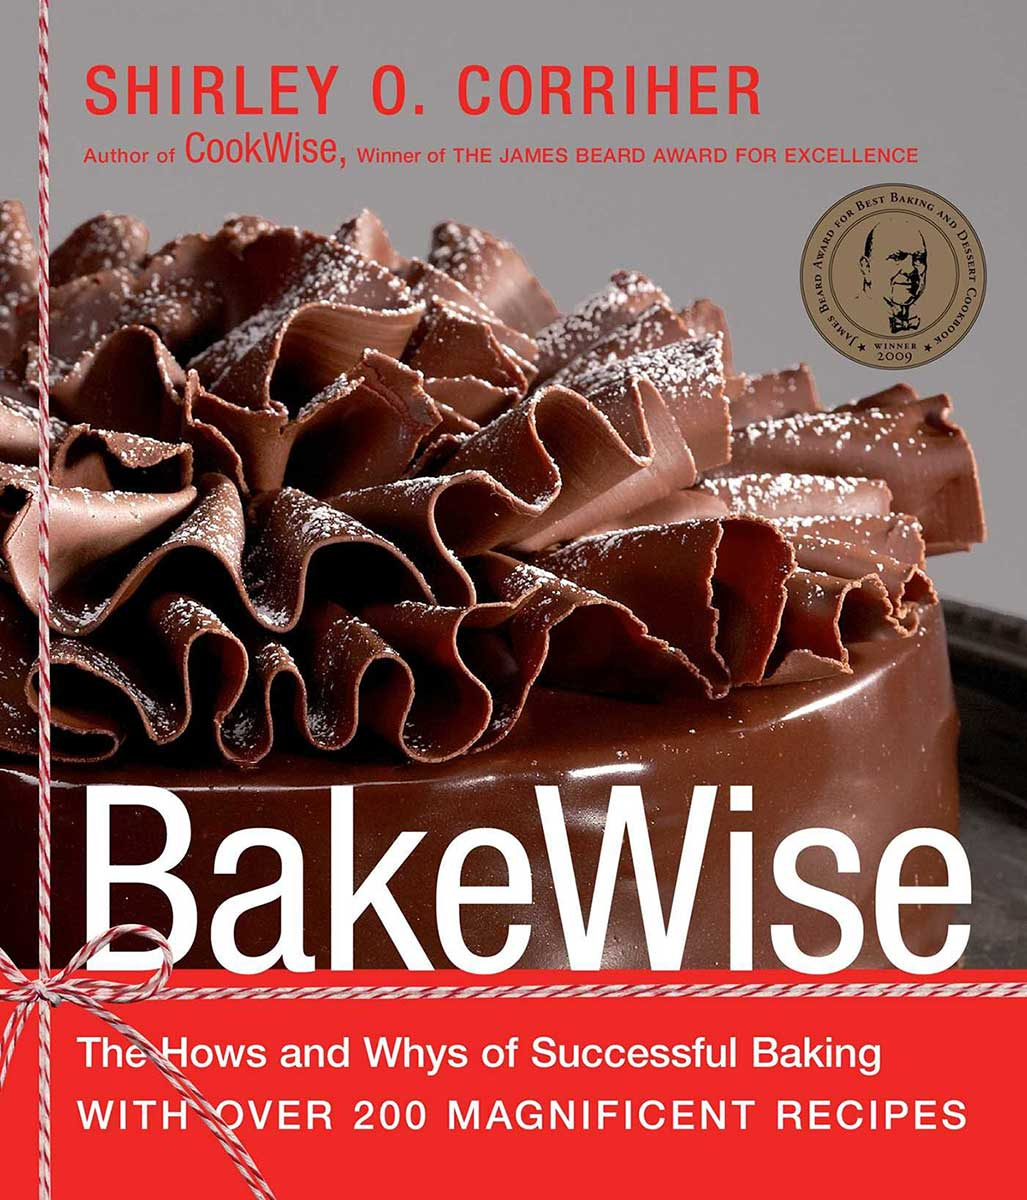 BakeWise: The Hows and Whys of Successful Baking with Over 200 Magnificent Recipes, by Shirley O. Corriher